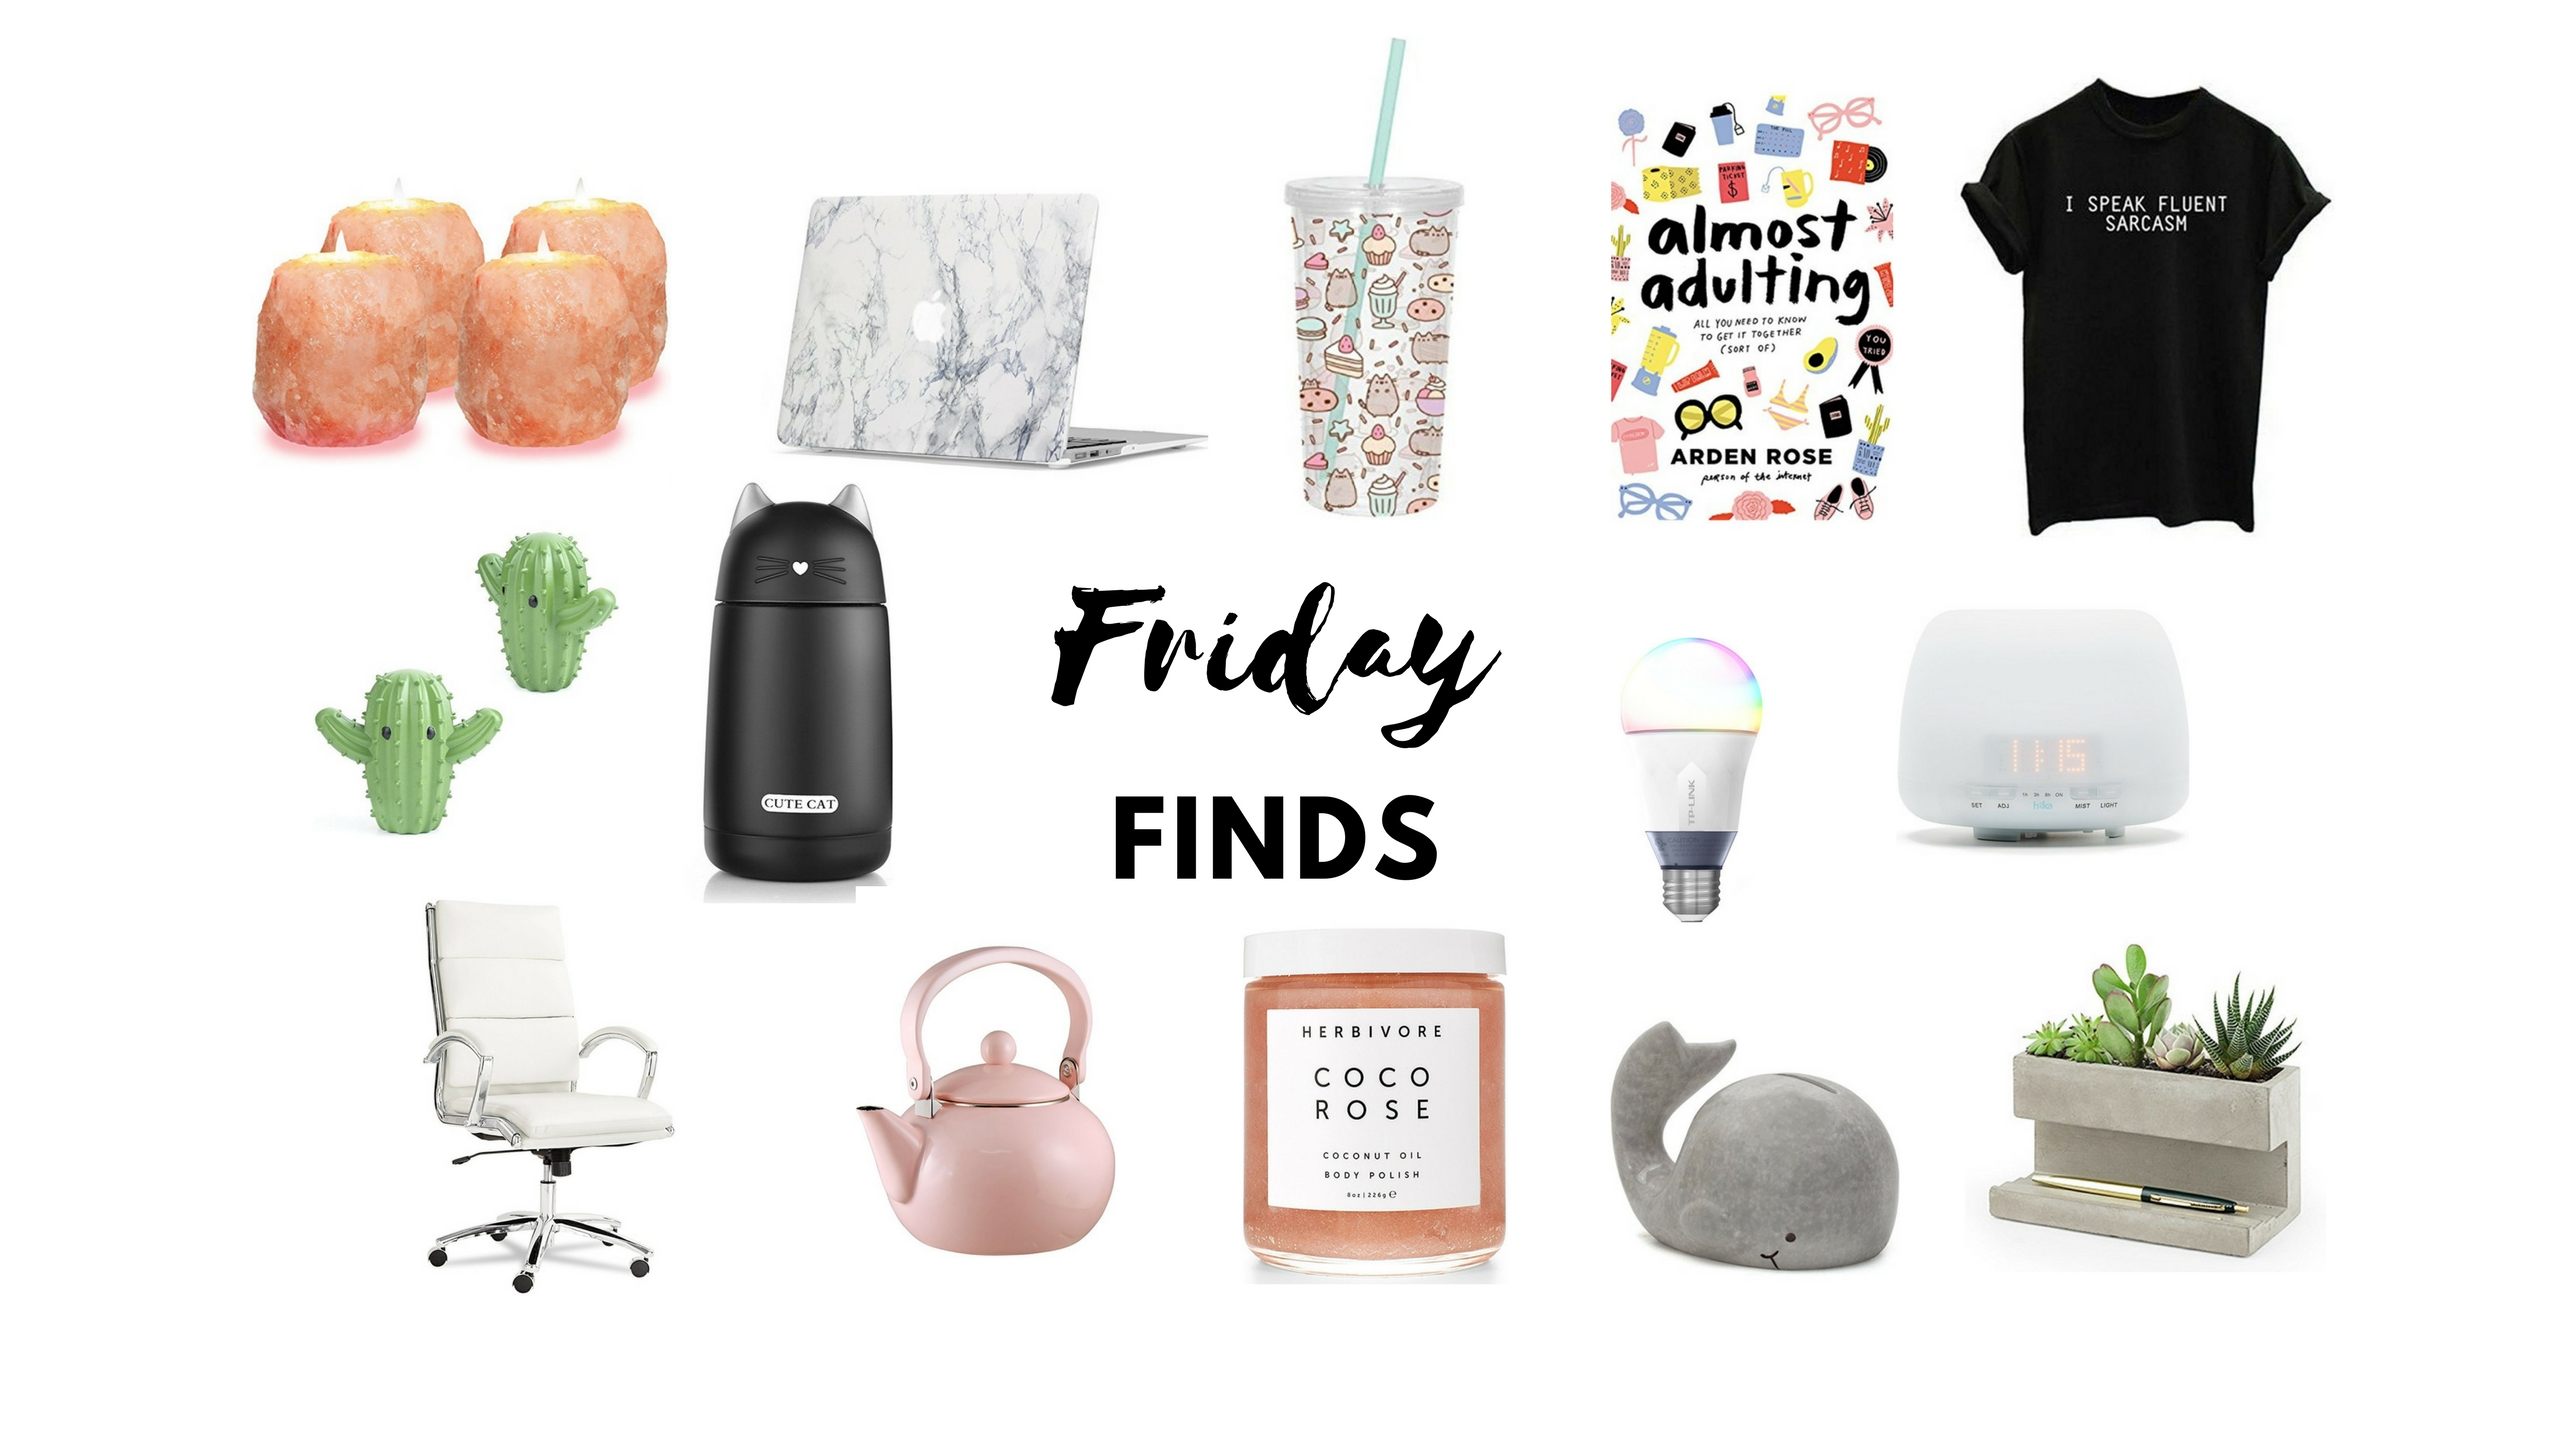 Friday Finds – Random Gifts For You + Your Friends